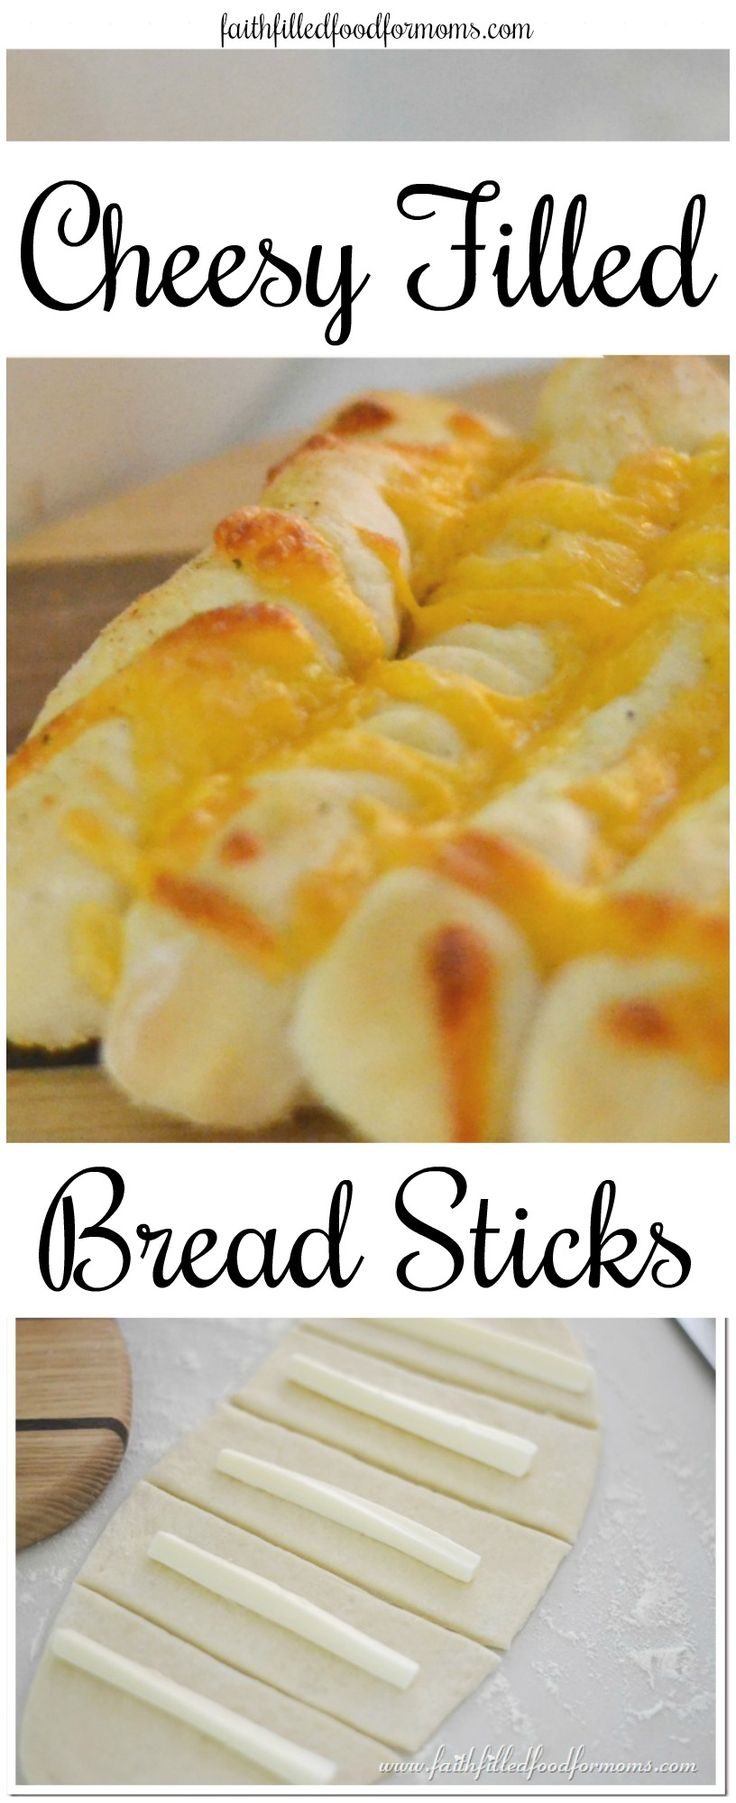 Homemade Cheese Filled Bread Sticks made with homemade pizza dough bread dough! Easy recipe and delicious! #bread #cheese